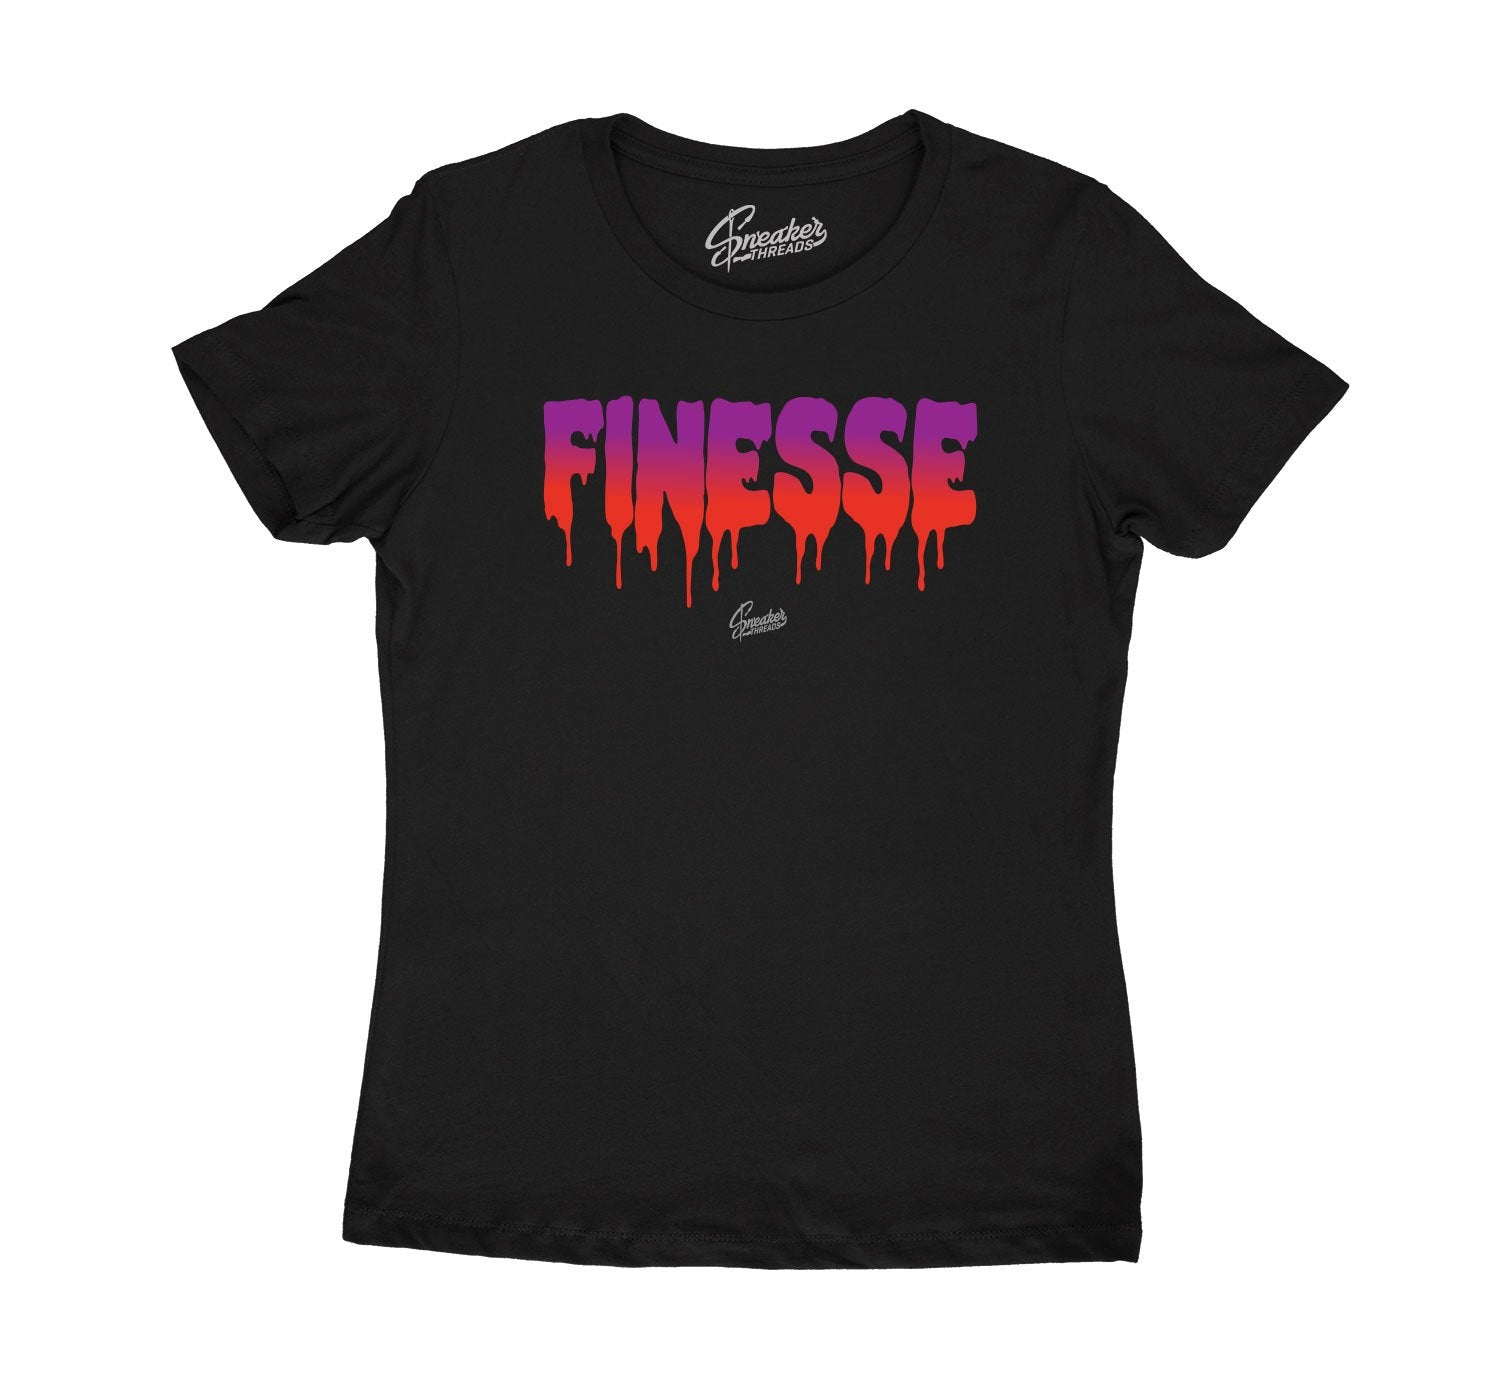 Jordan 7 Berry Black Gloss Shirts for women to match perfect